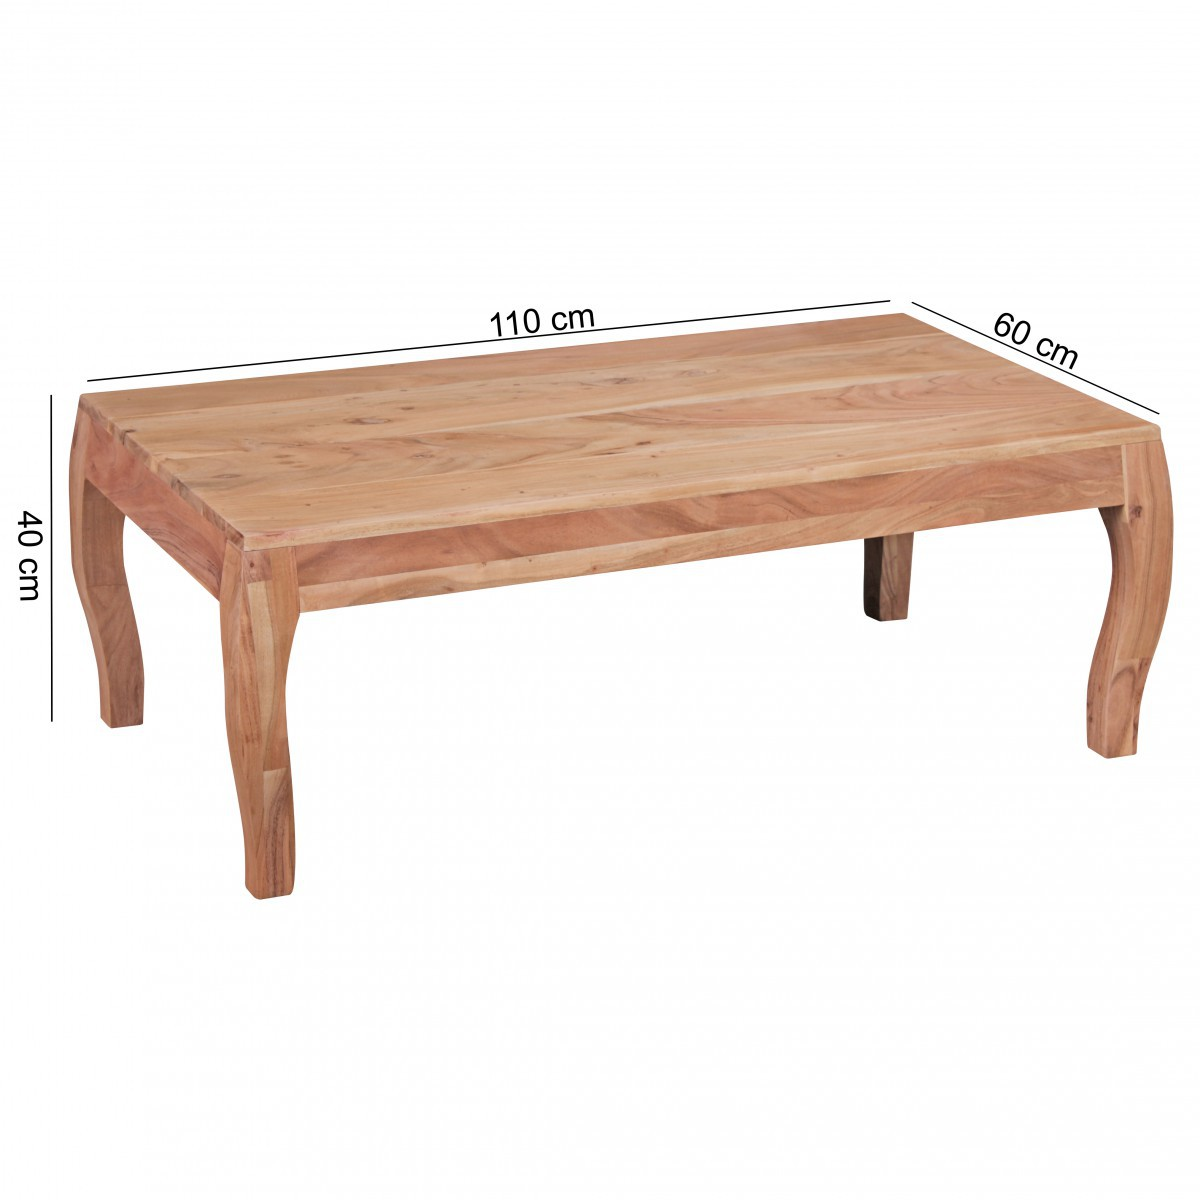 coffee table solid wood acacia living room table side table 110cm wooden natural ebay. Black Bedroom Furniture Sets. Home Design Ideas